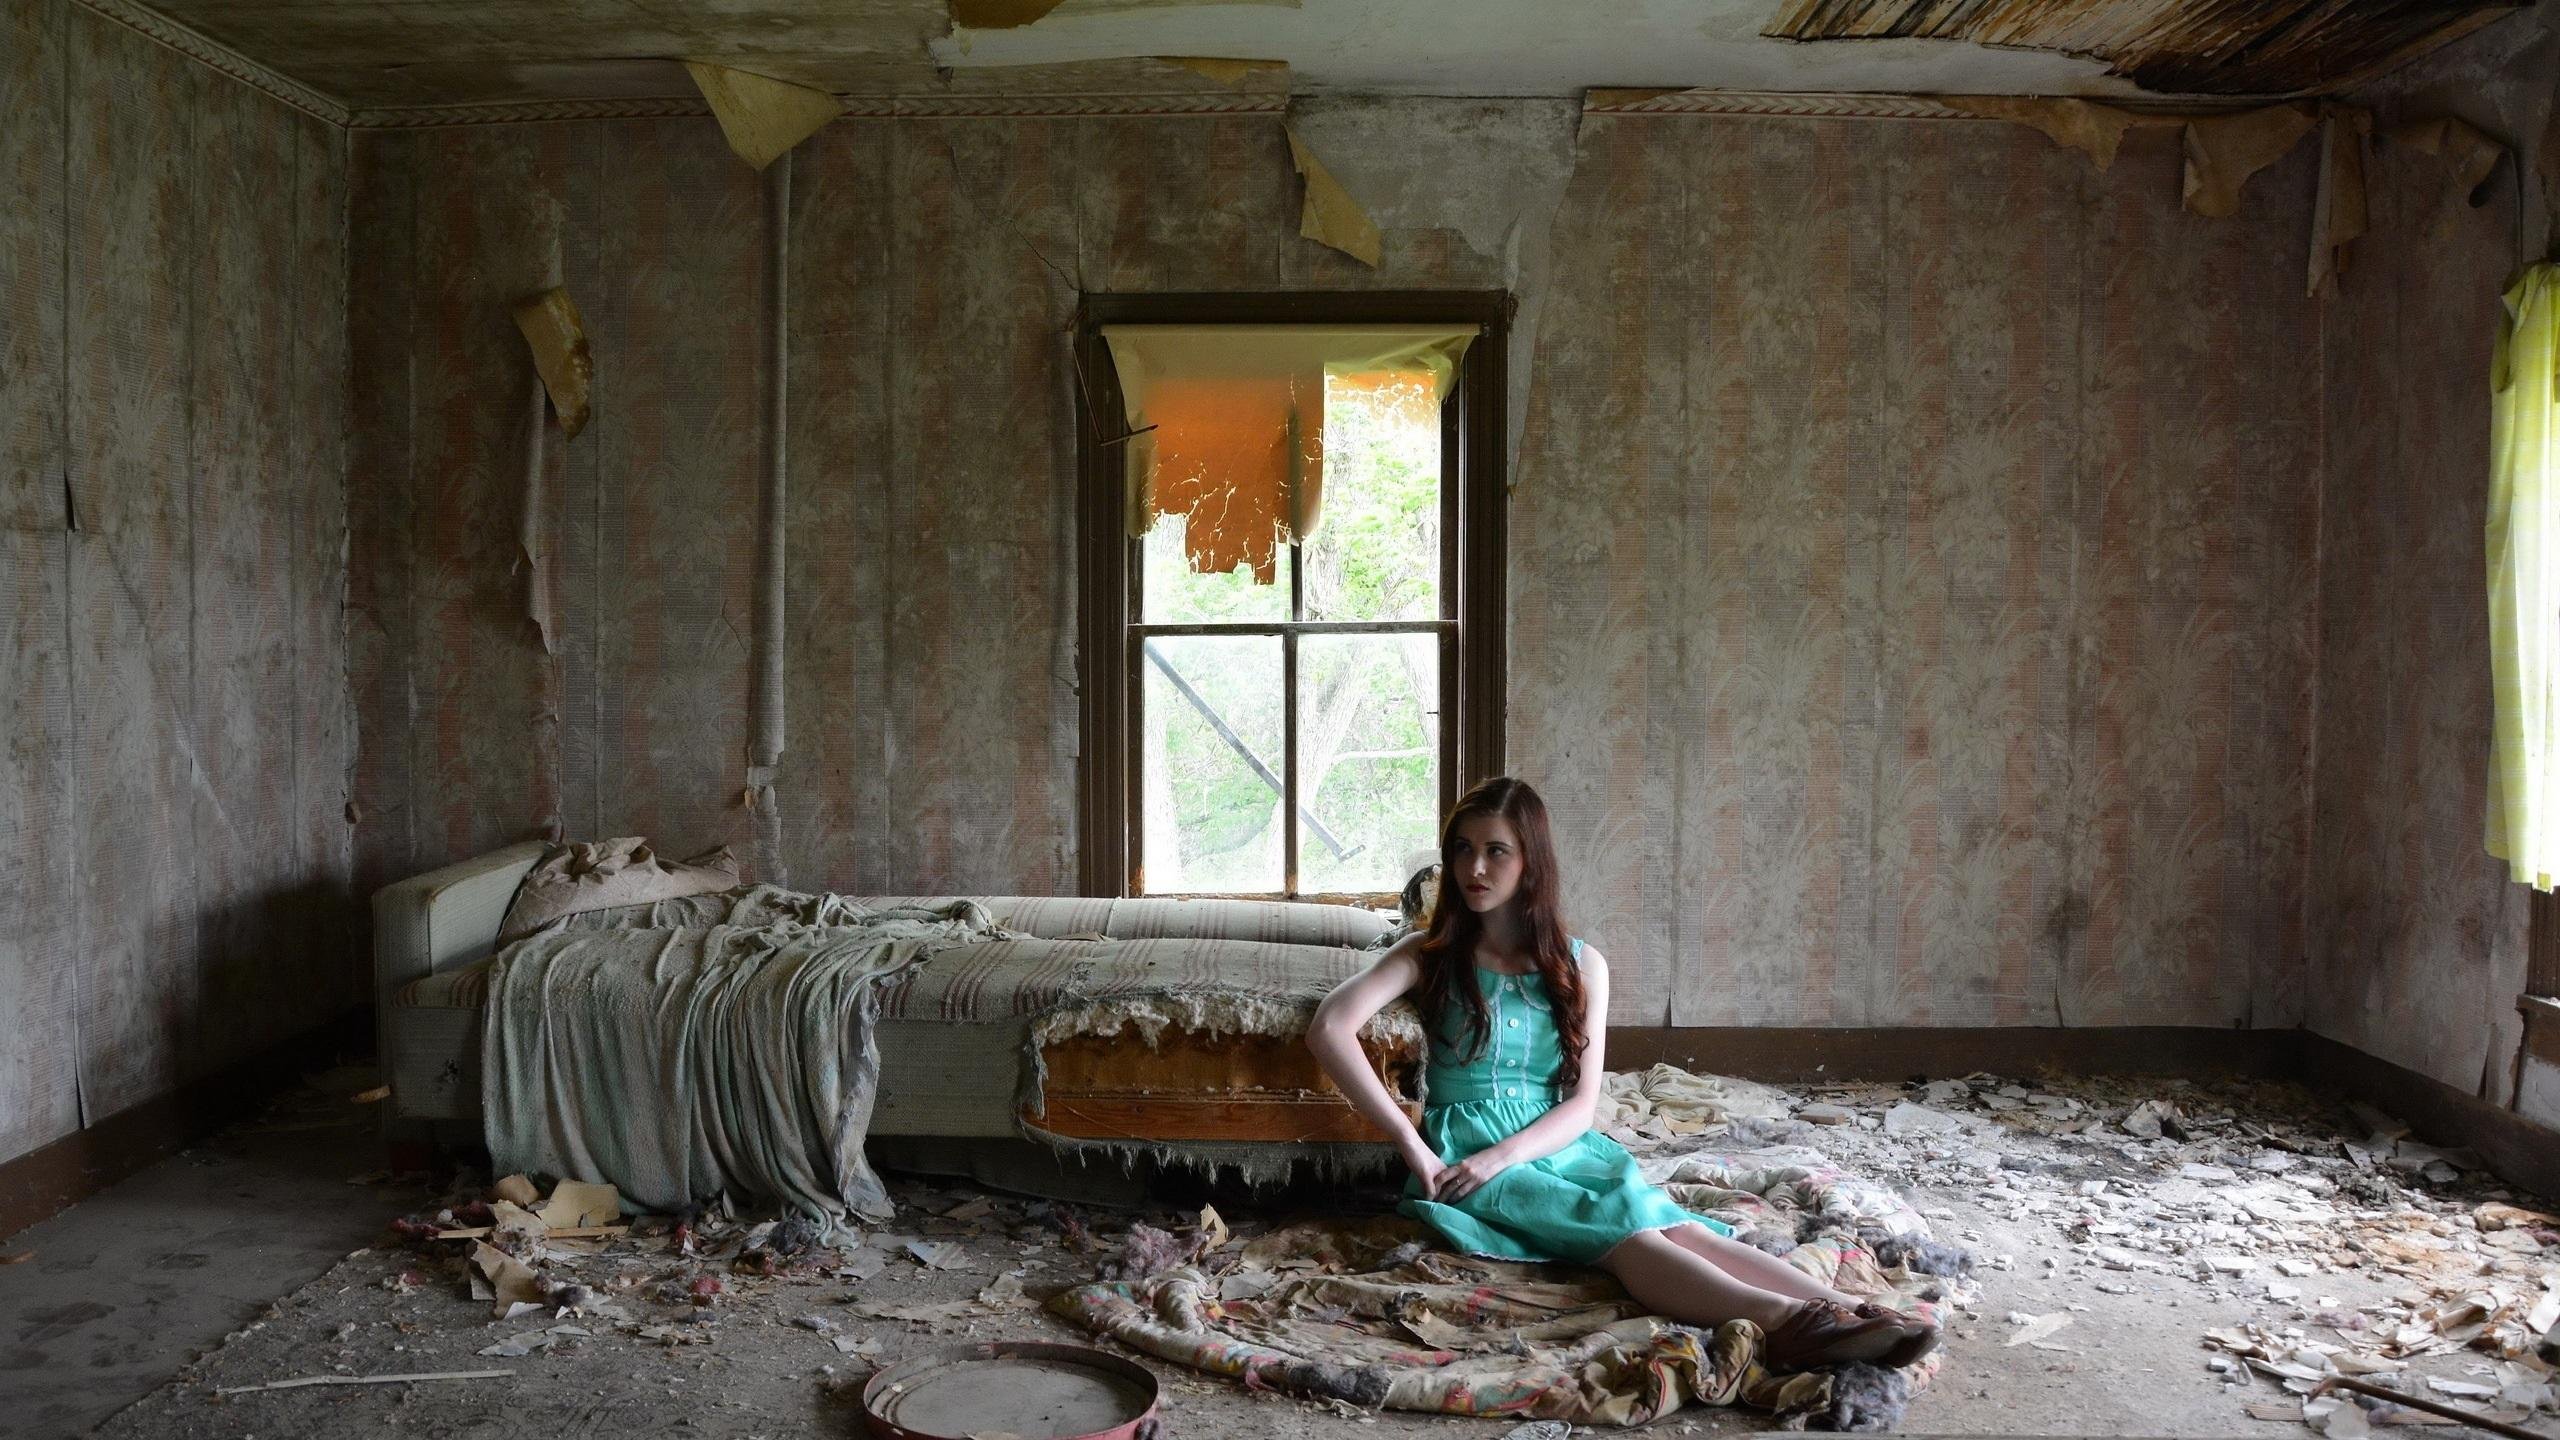 HD Woman Sitting In The Abandoned Room Wallpaper